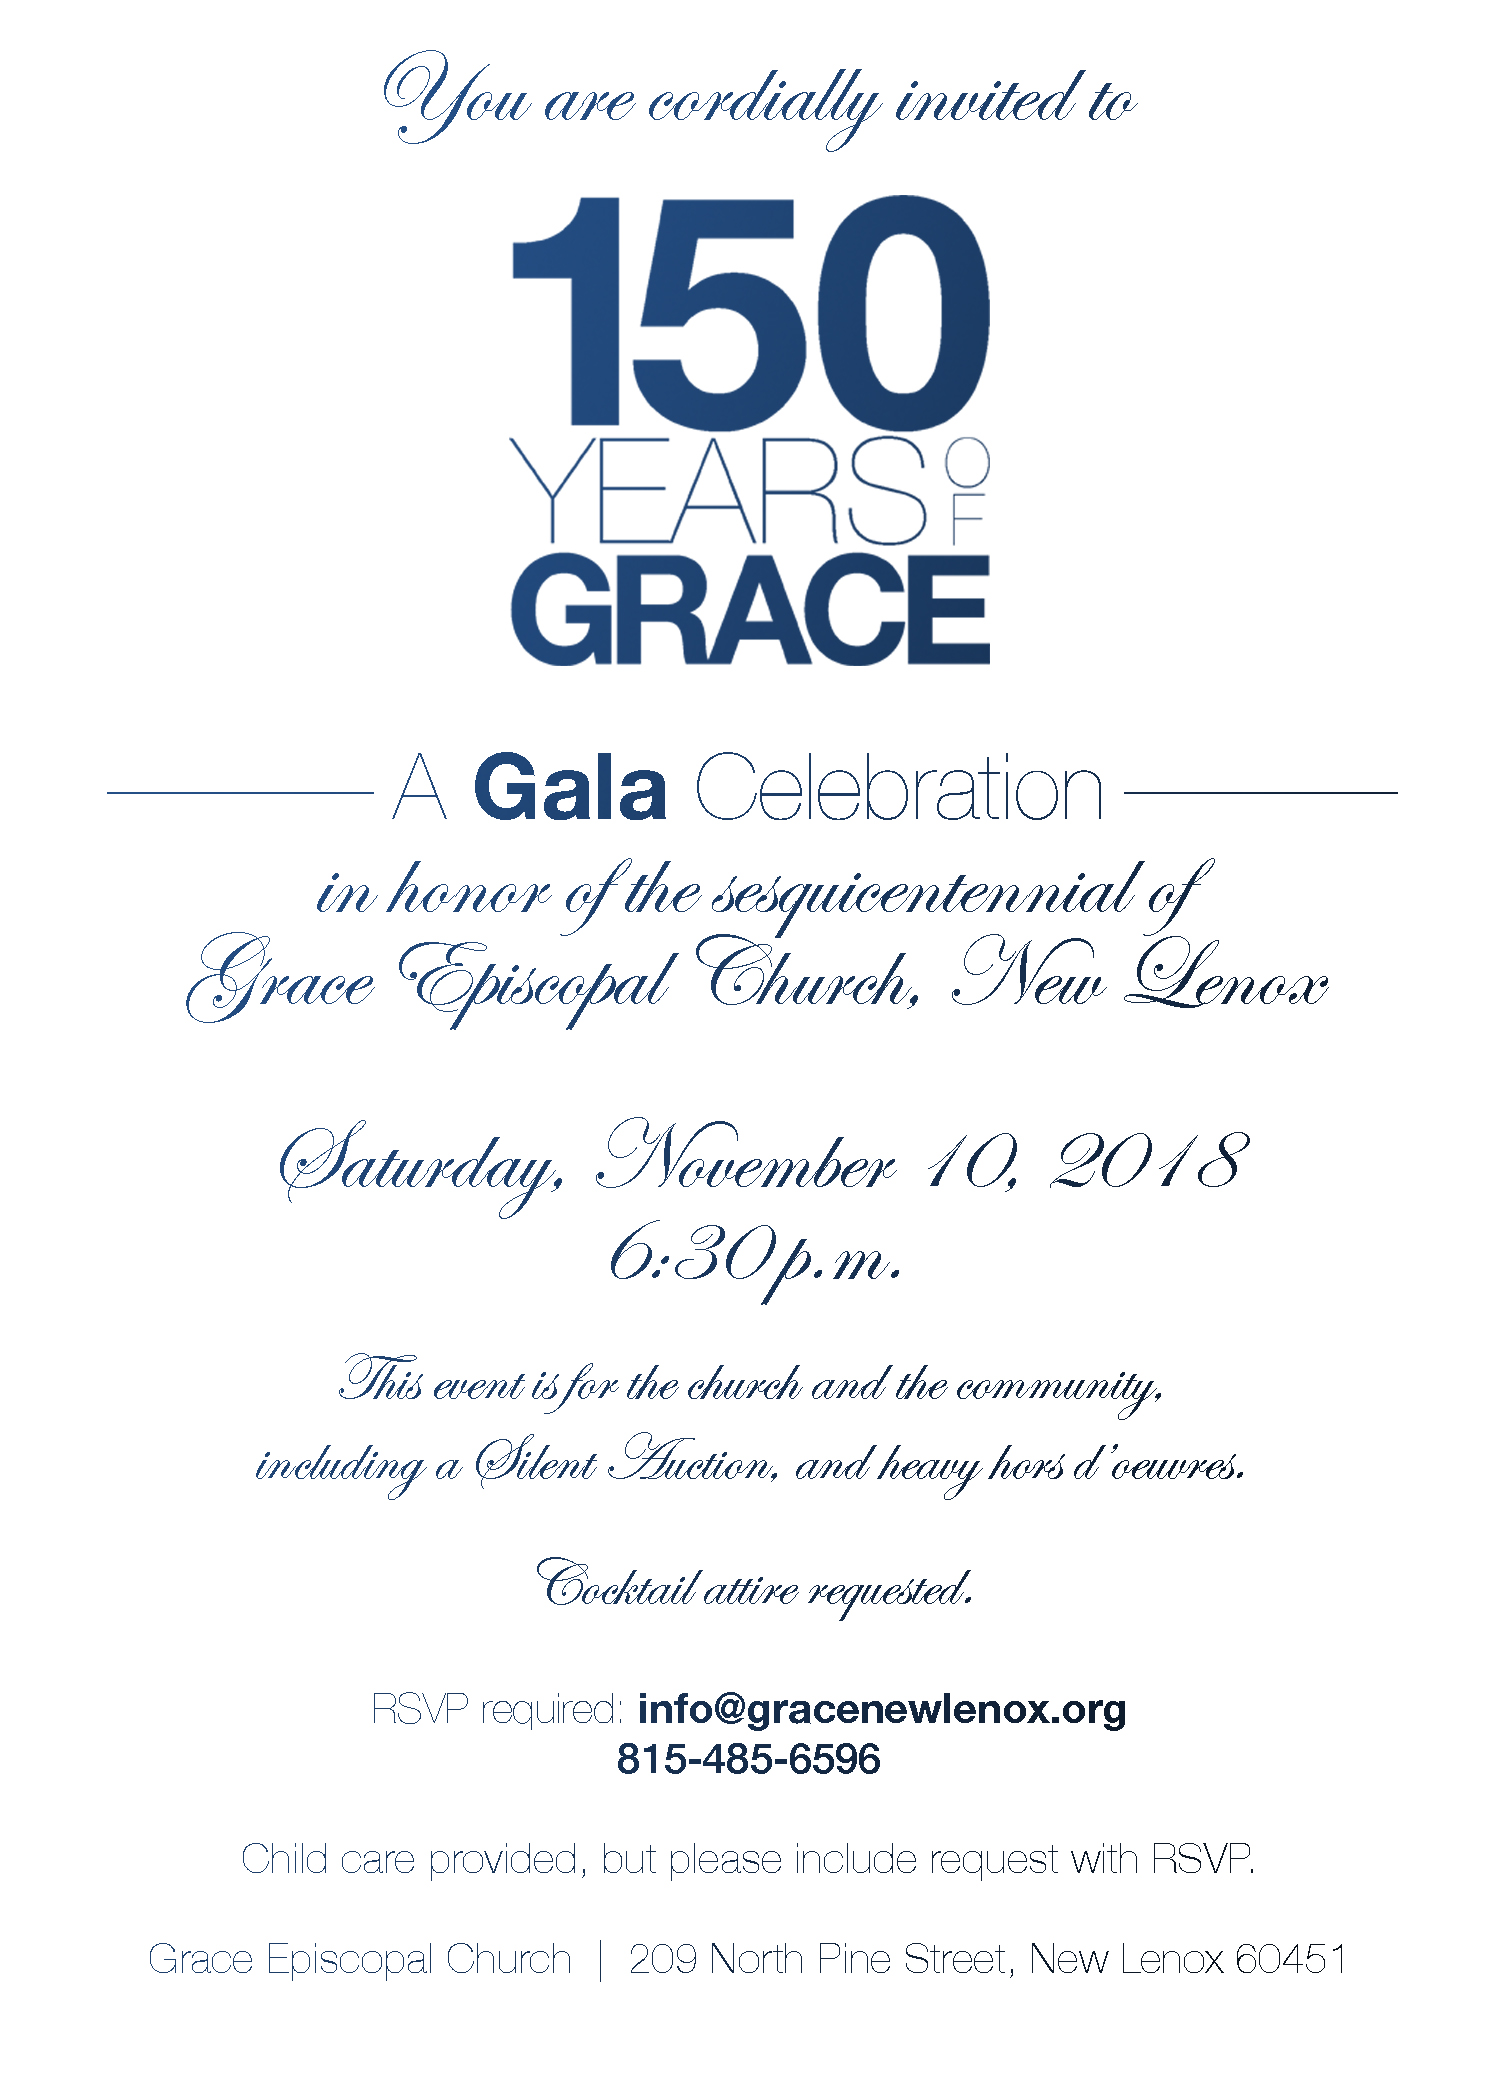 Please click on the invite to RSVP. You will receive tickets (no cost) by mail or pick-up for the event. RSVP right away!